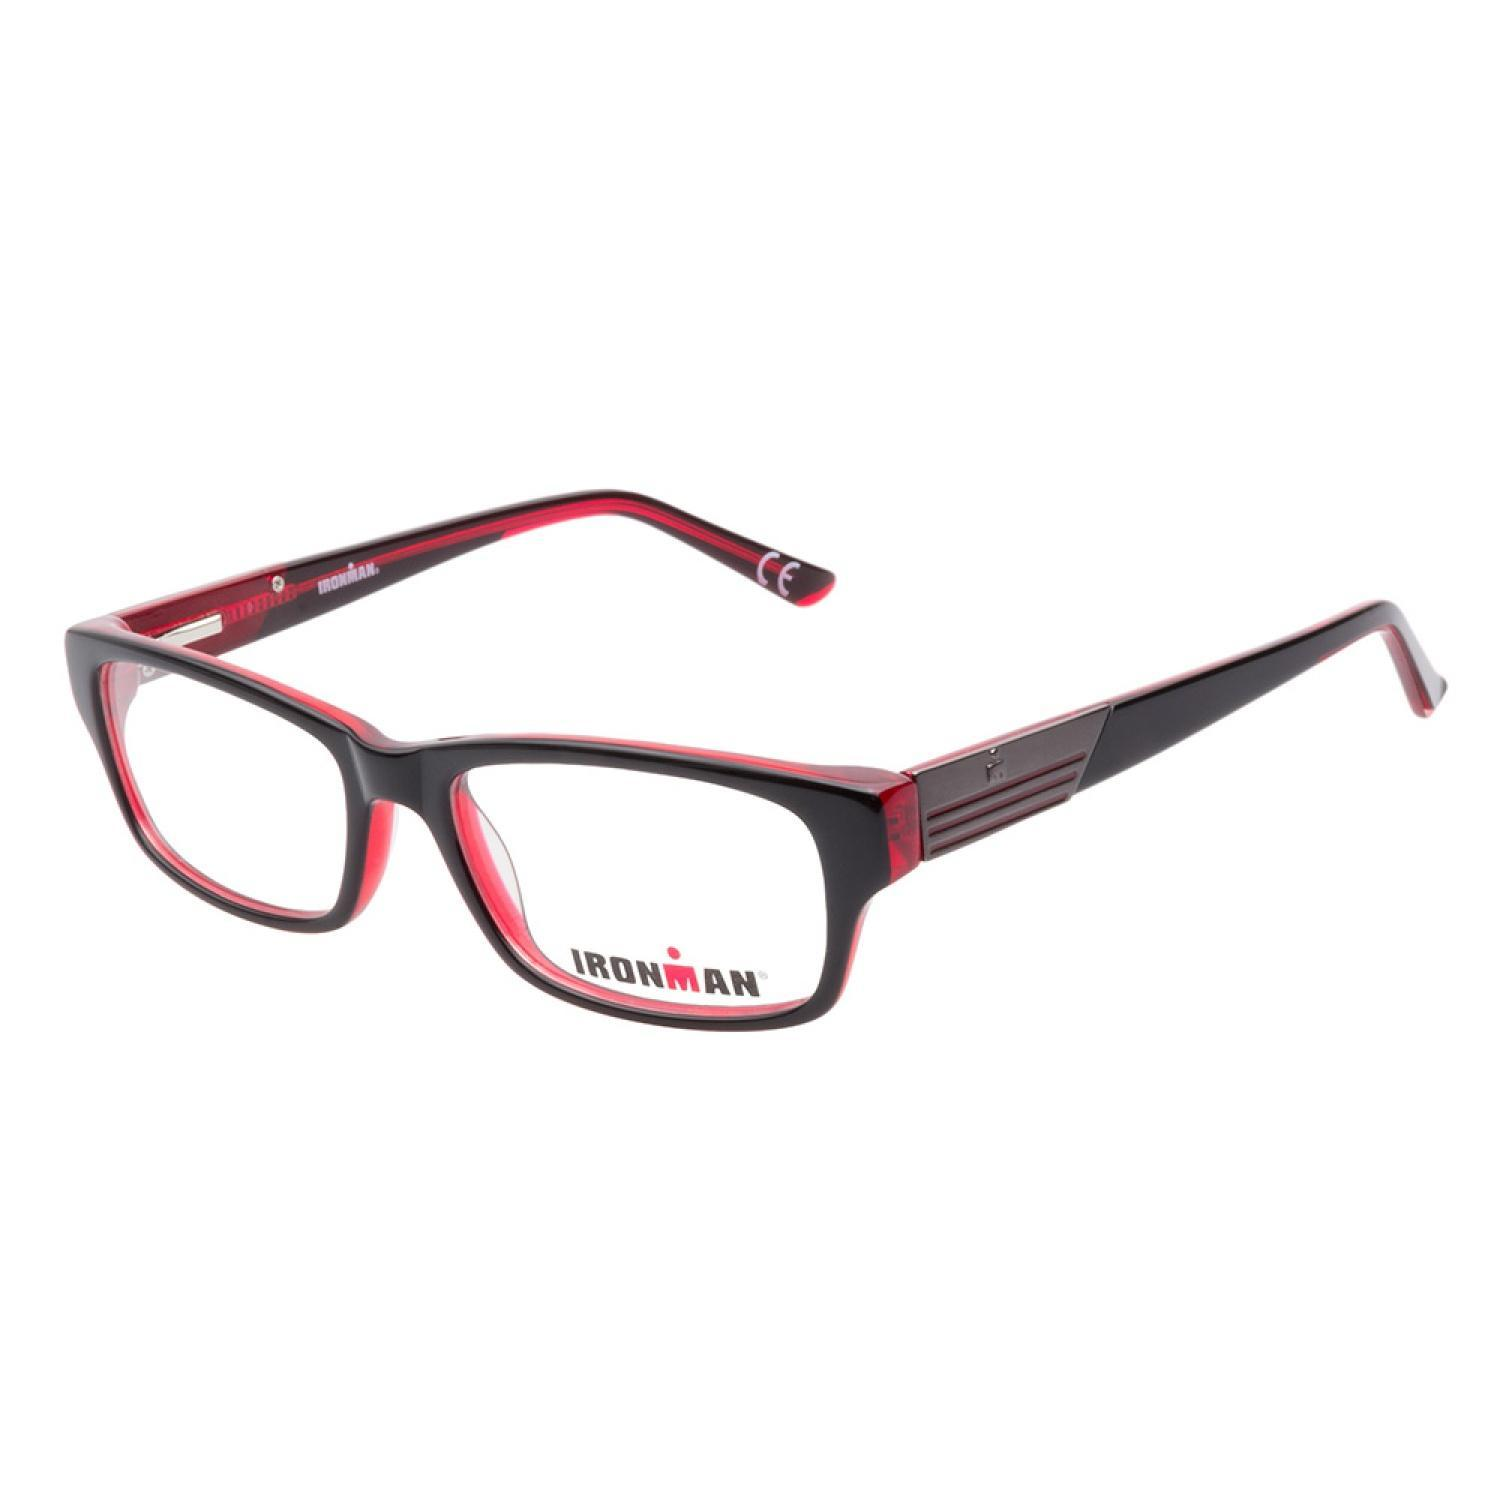 8c47d6c869d Buy Glasses Online With Vision Insurance - Bitterroot Public Library